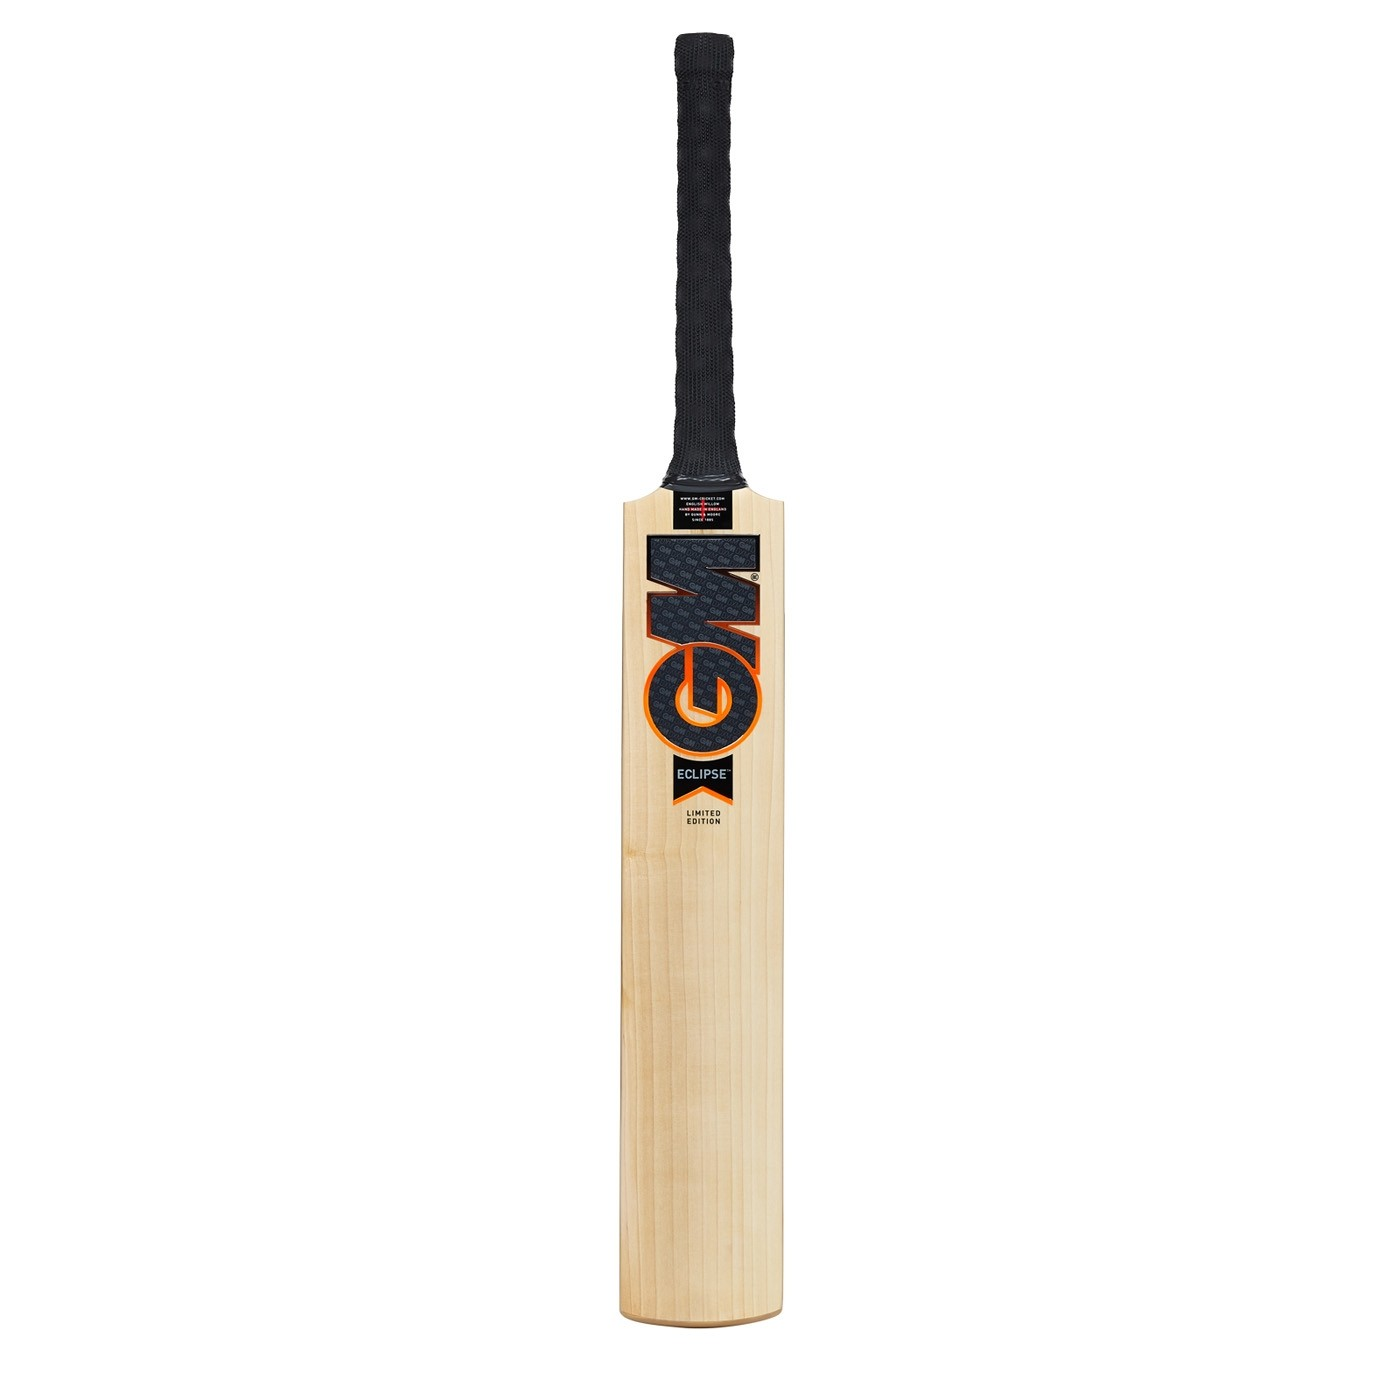 2020 Gunn and Moore Eclipse DXM Limited Edition Cricket Bat